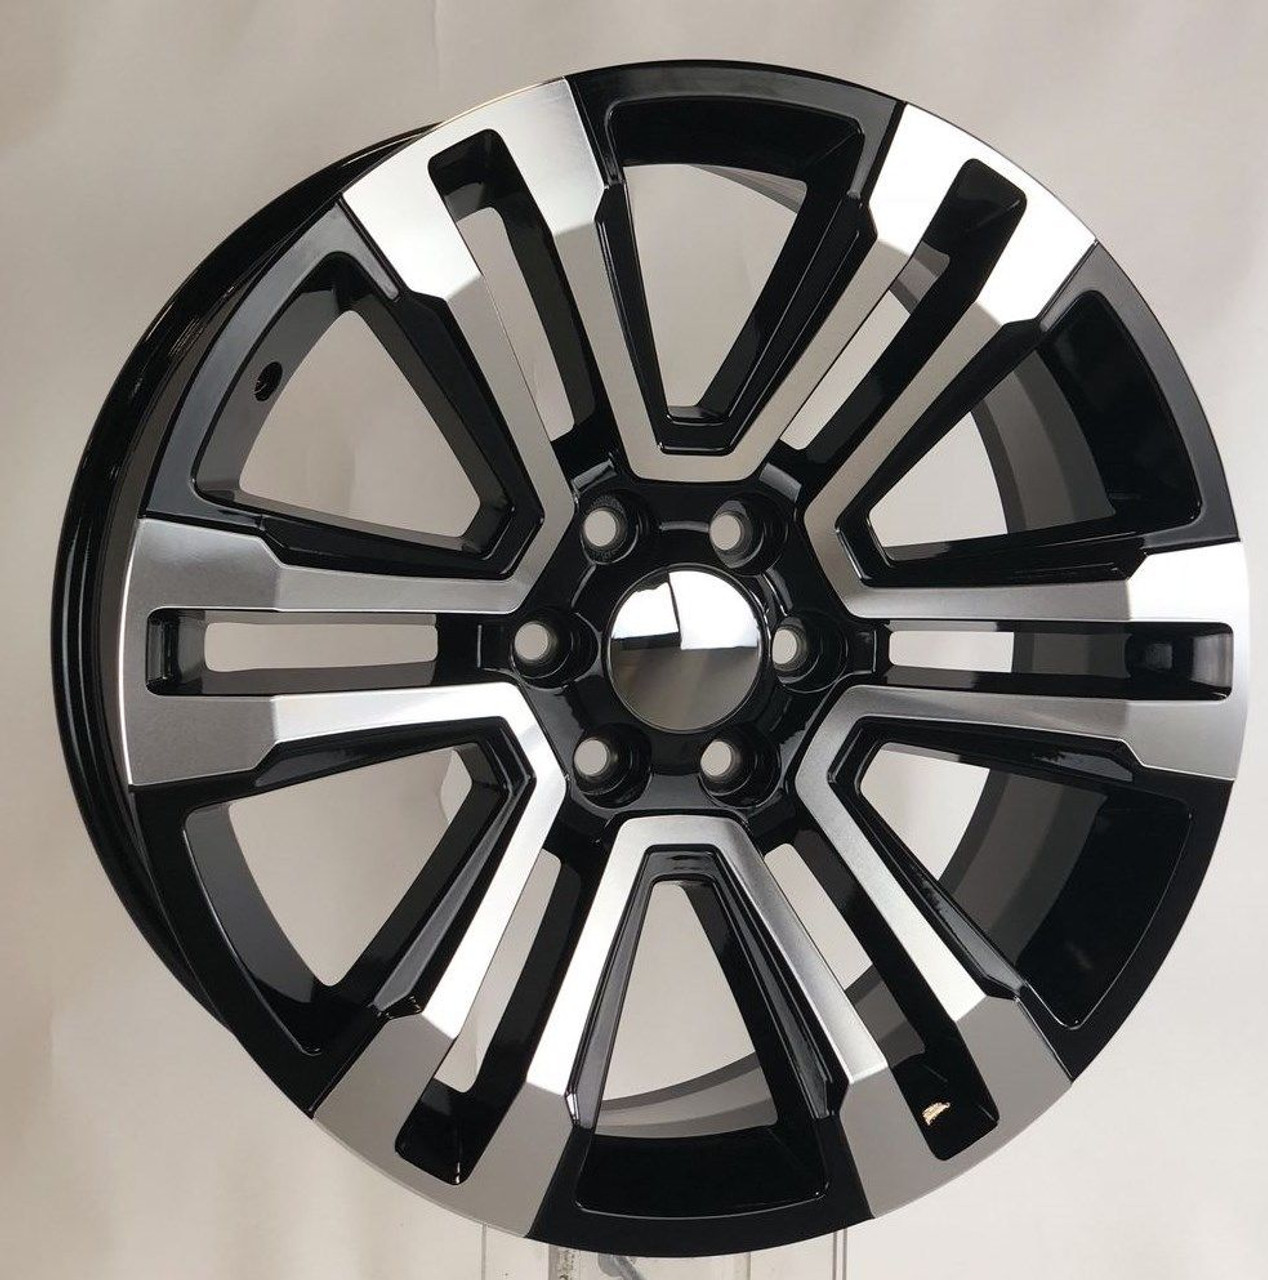 "Black and Machine 22"" Denali Style Split Spoke Wheels for GMC Sierra, Yukon, Denali - New Set of 4"